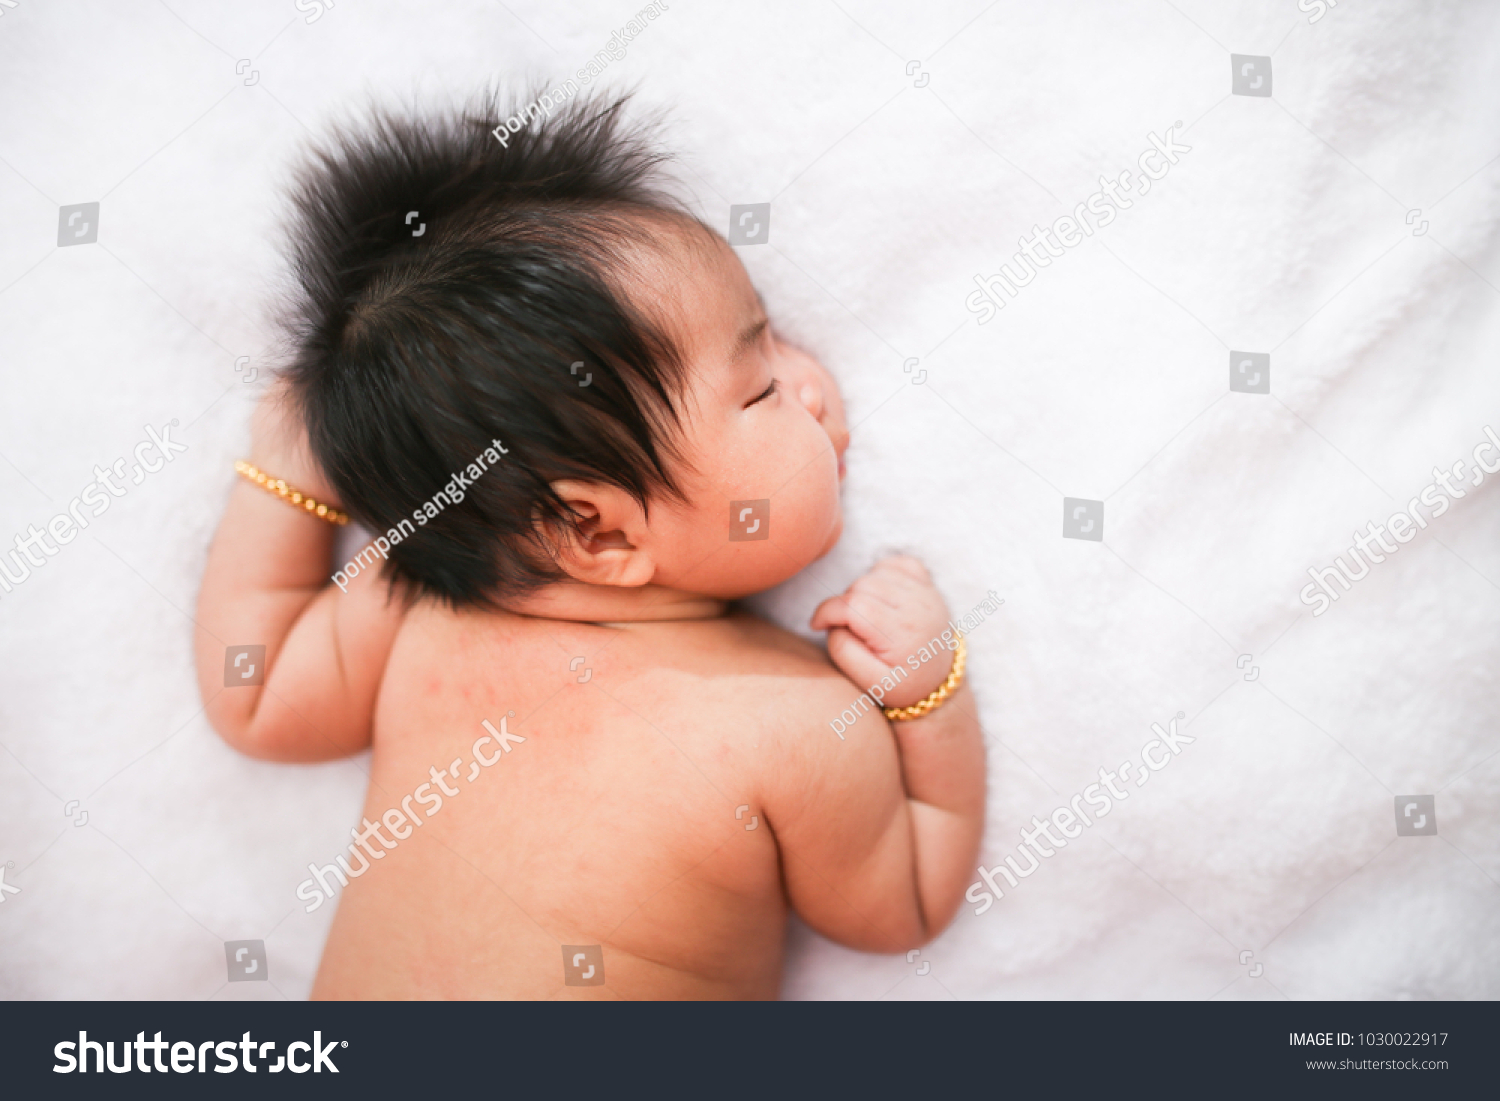 baby newborn shes chubby cute shes stock photo (royalty free